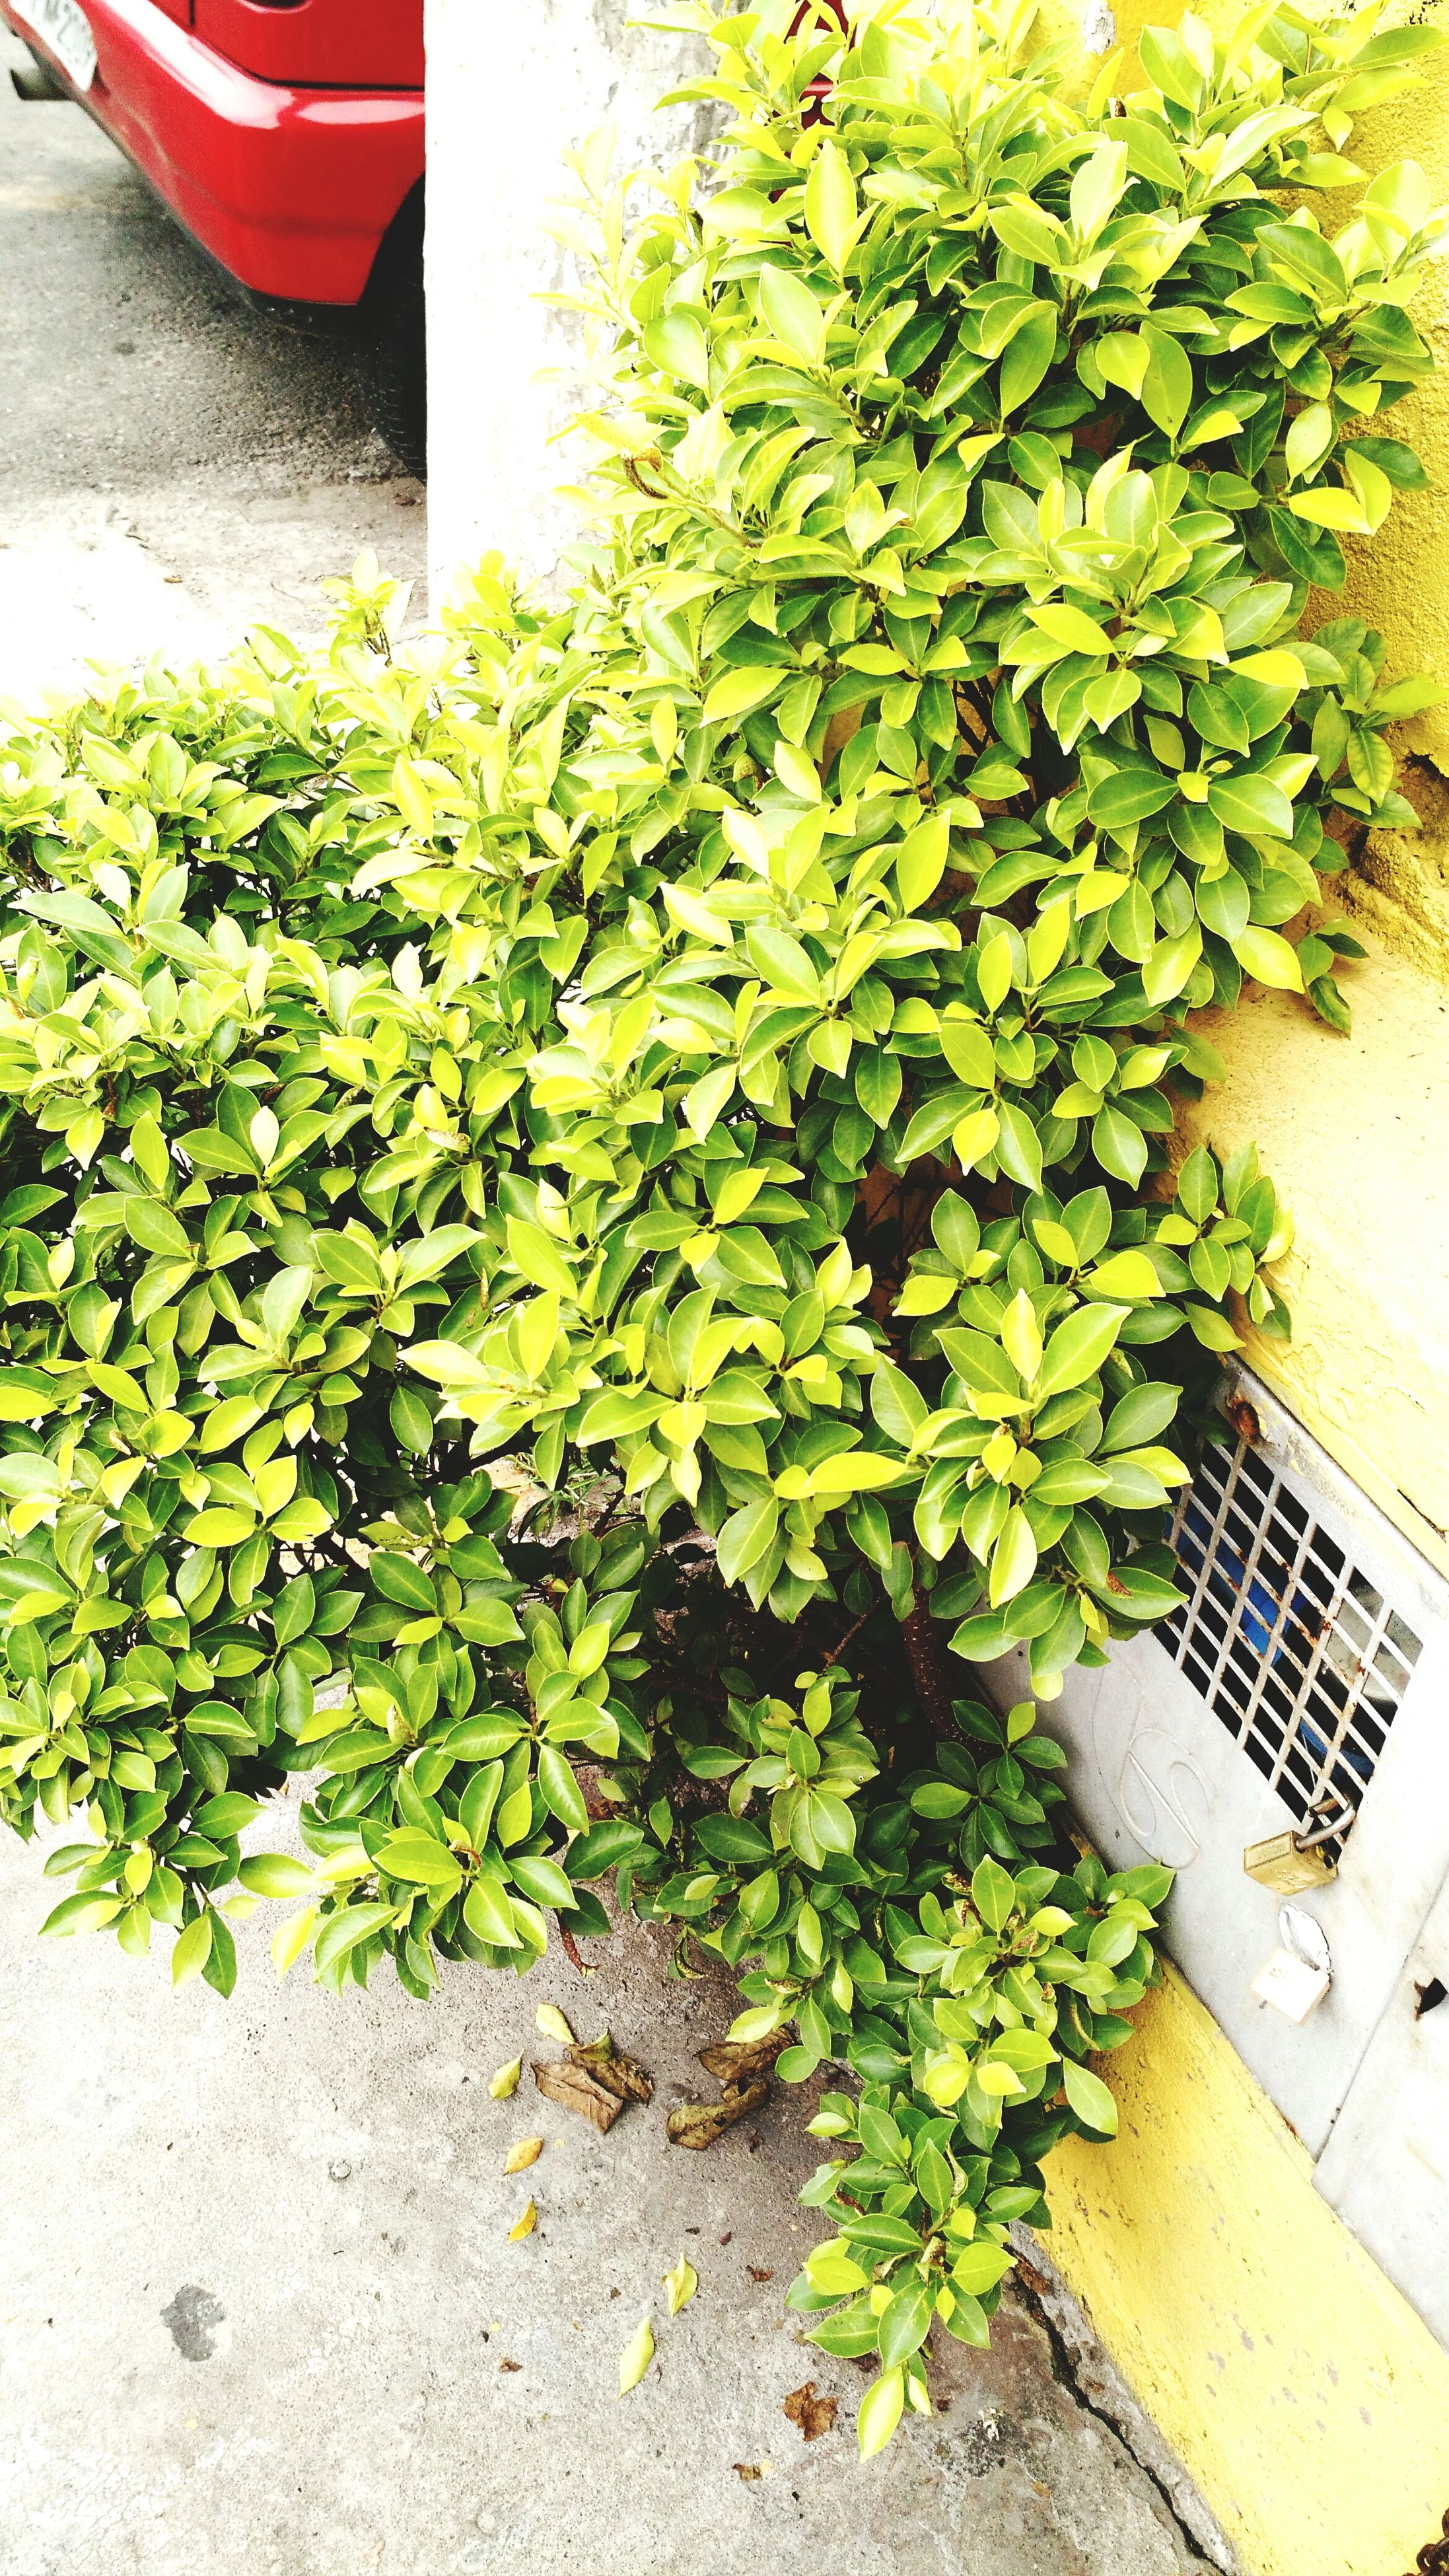 plant, growth, leaf, building exterior, built structure, architecture, green color, potted plant, front or back yard, high angle view, growing, nature, no people, freshness, outdoors, day, house, flower, wall - building feature, ivy